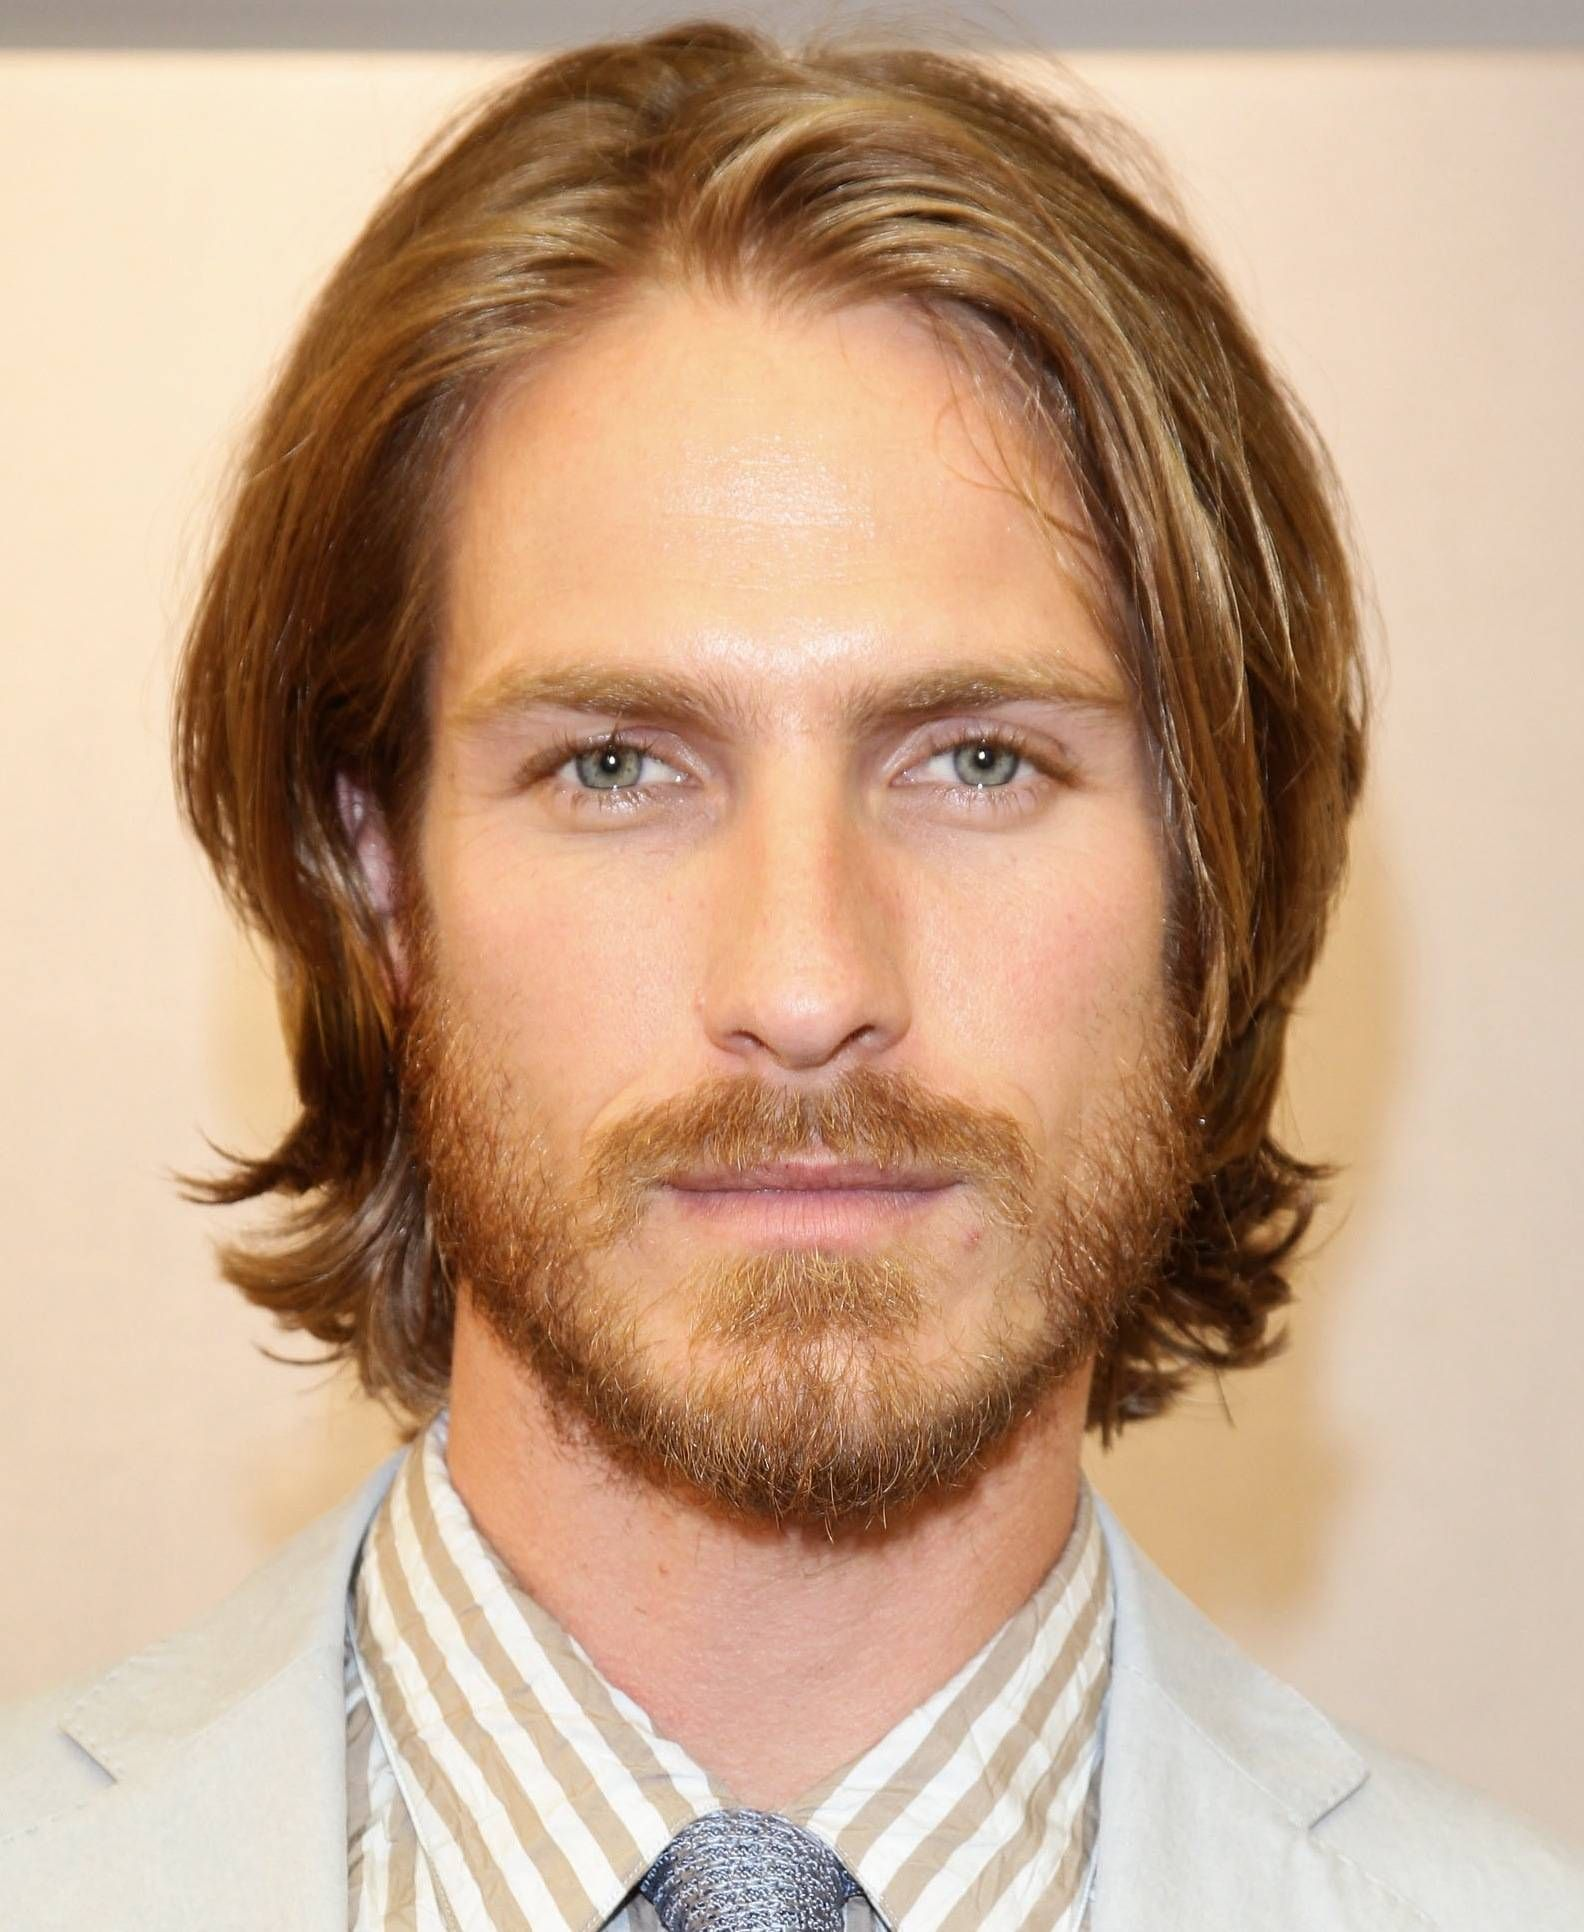 Long Haircut For Men Mens Hairstyles Pinterest More Long - Male hair styles